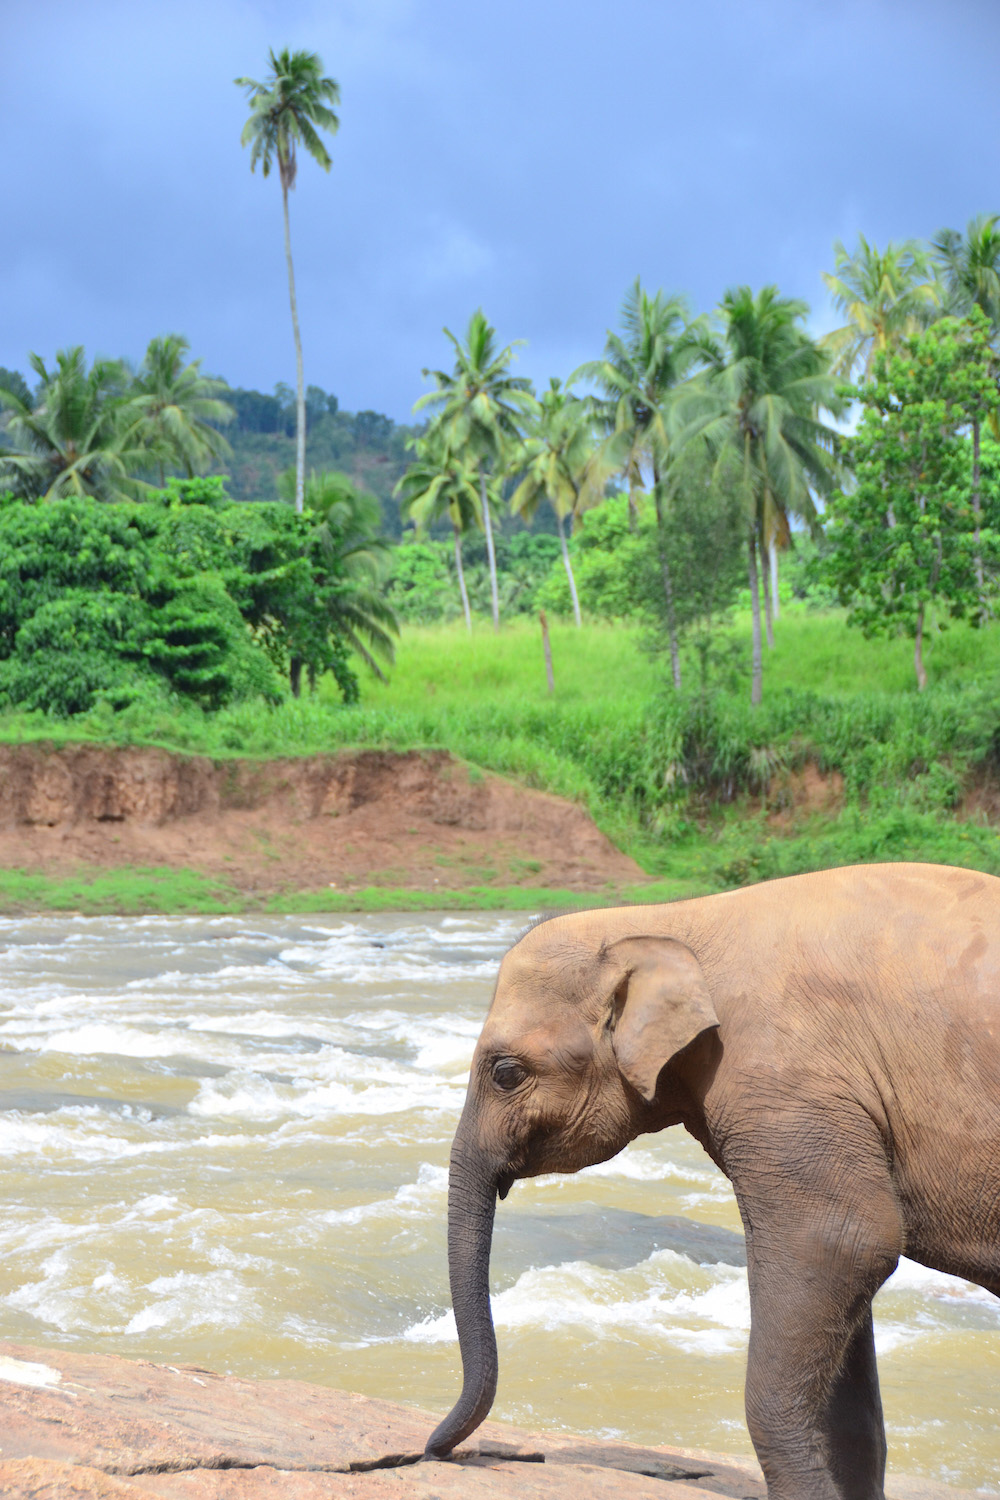 Elephant at a river